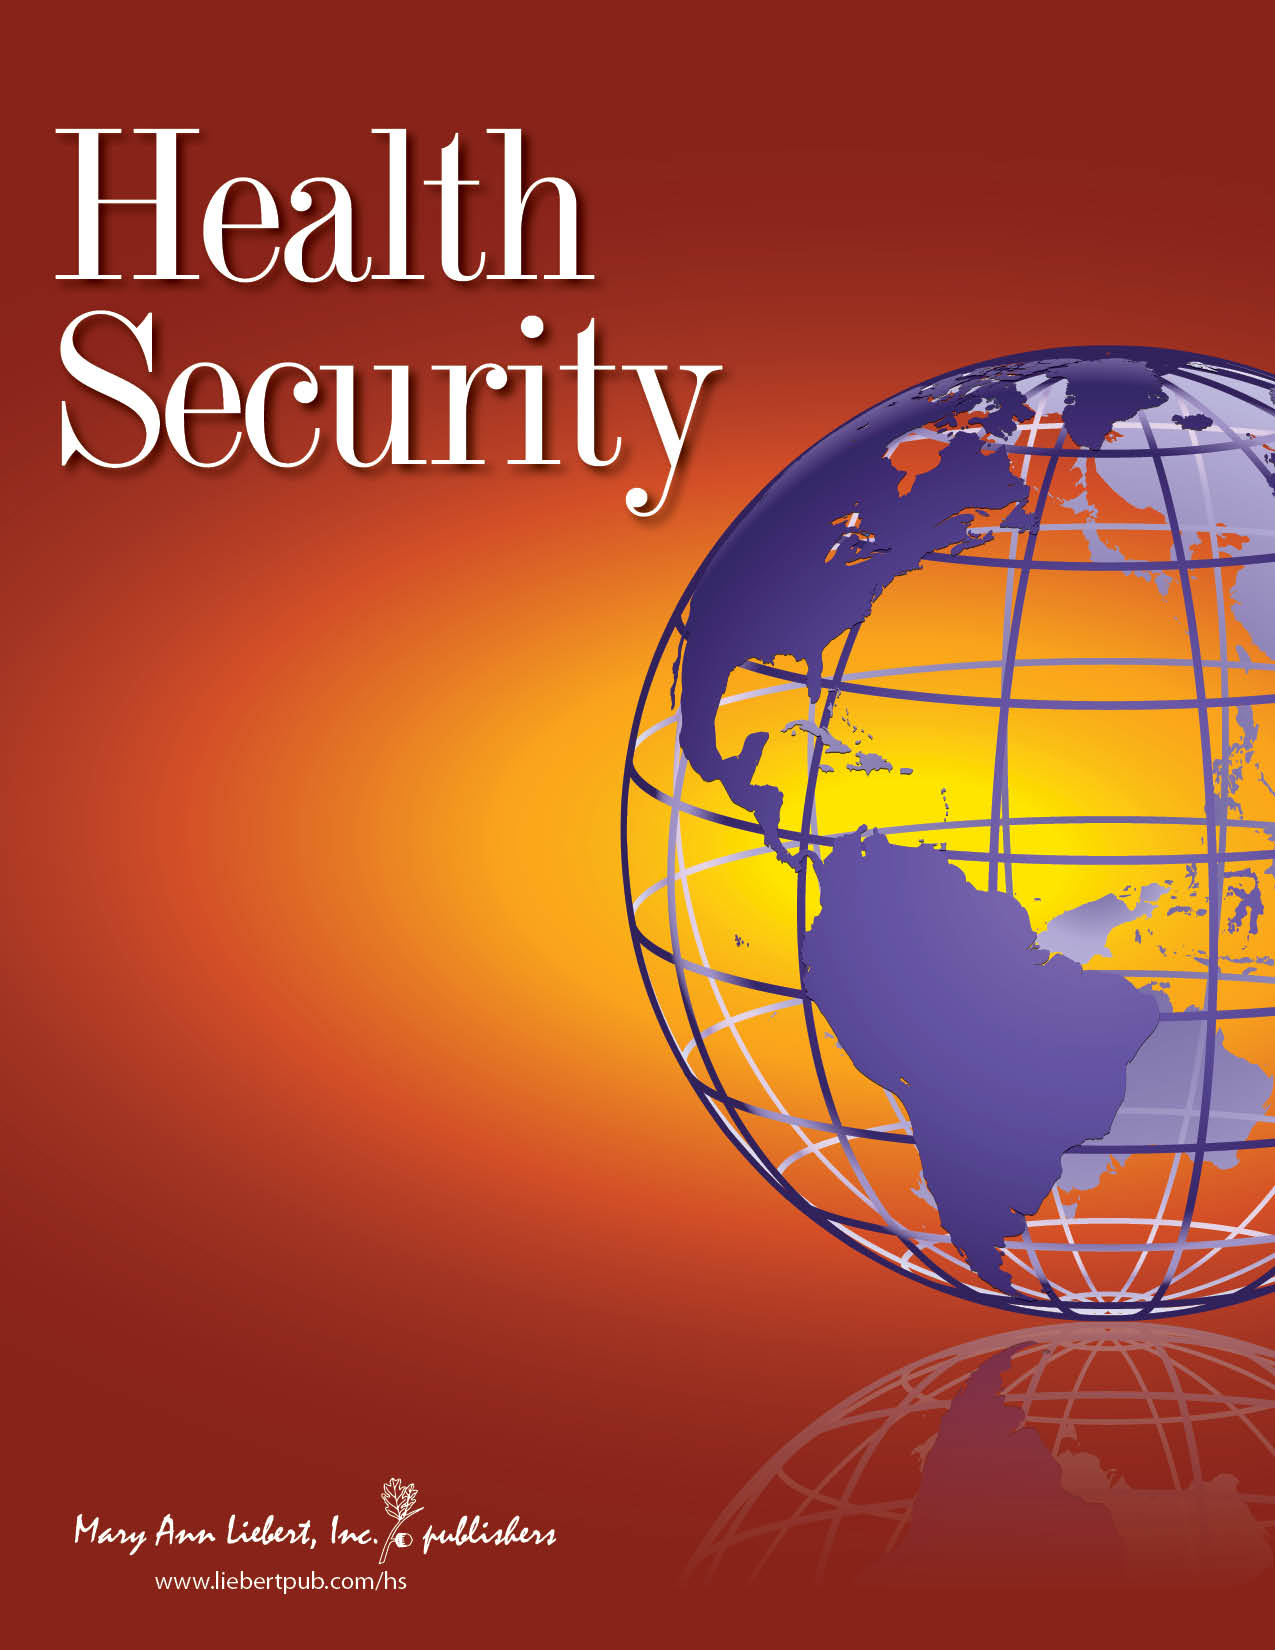 Health Security Journal cover